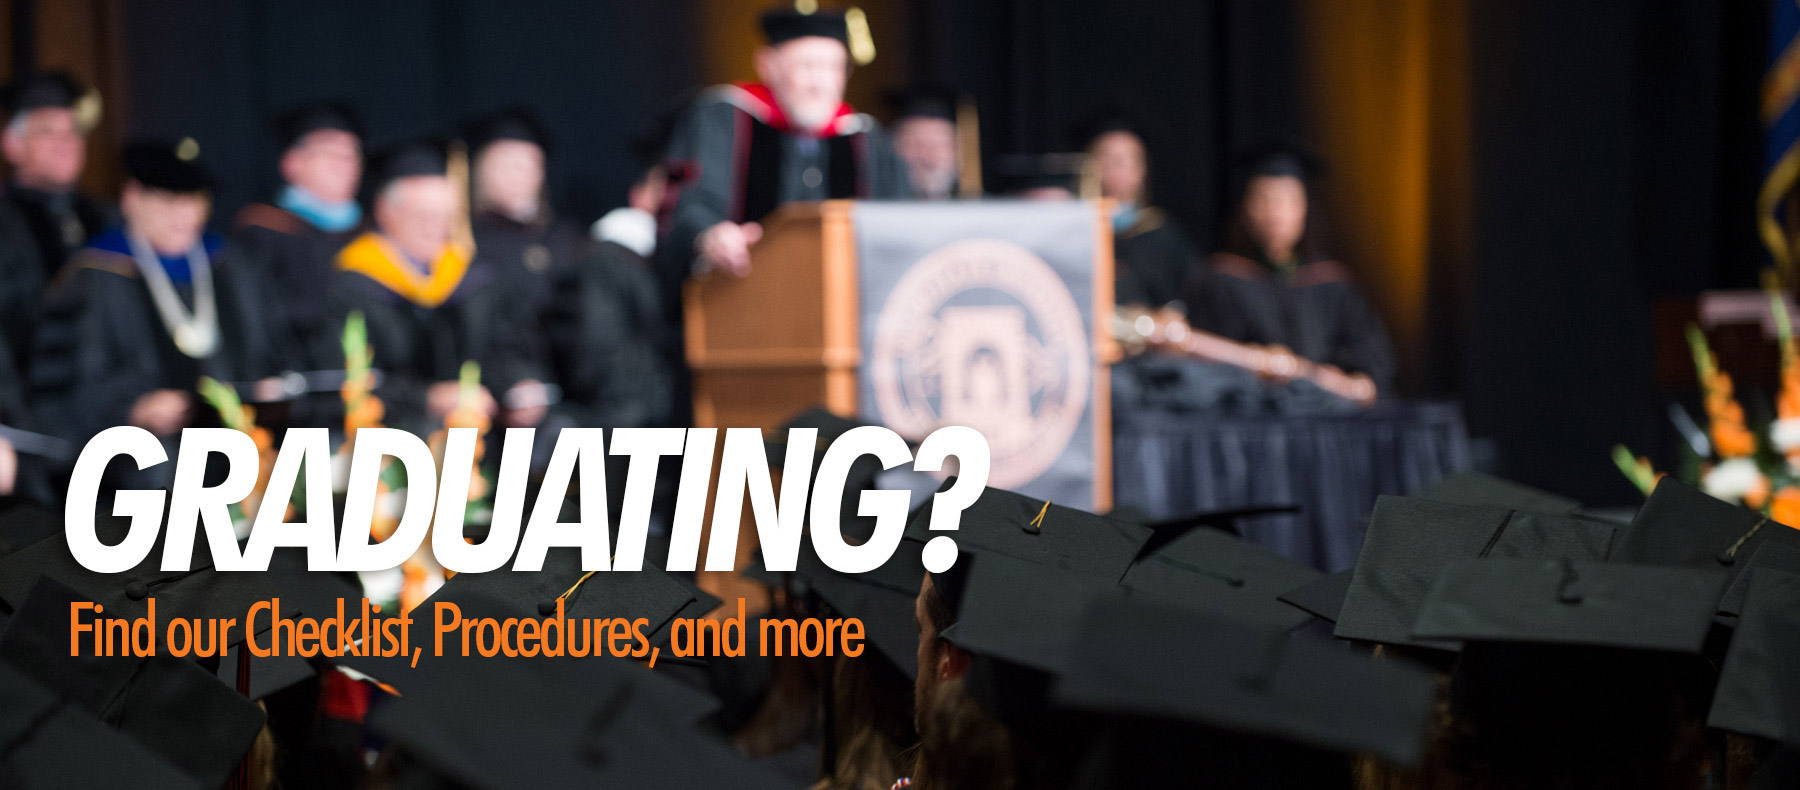 Graduating? Find our checklist, procedures, and more